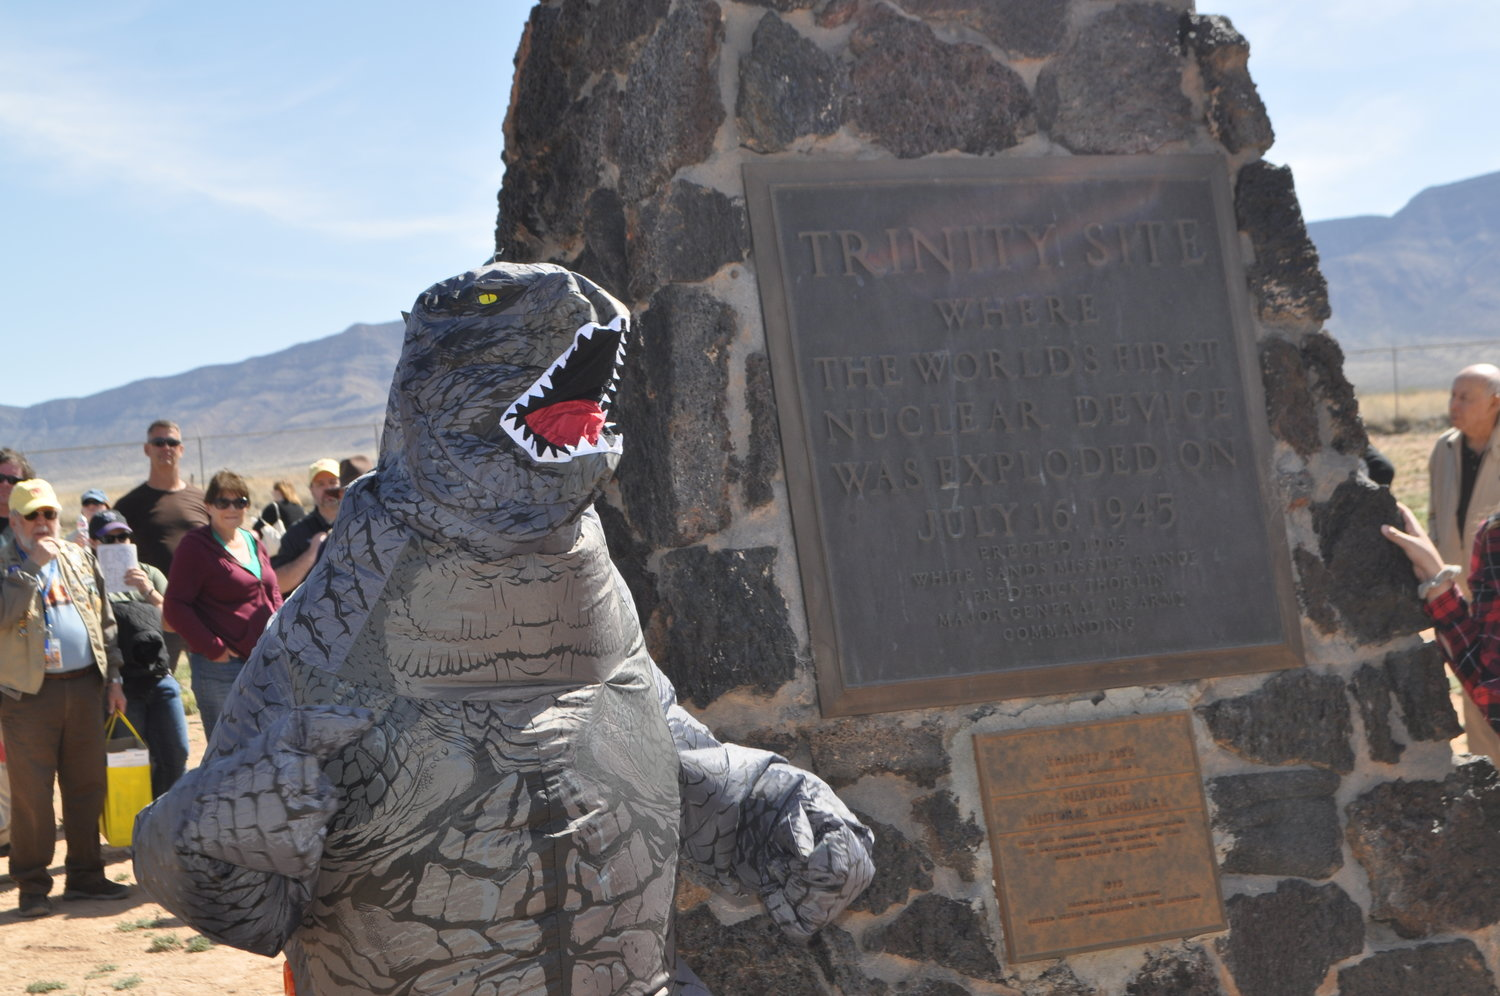 Godzilla hangs out at the Trinity Test site challenging visitors who have come to read the plaque on the black obelisk commemorating the test.